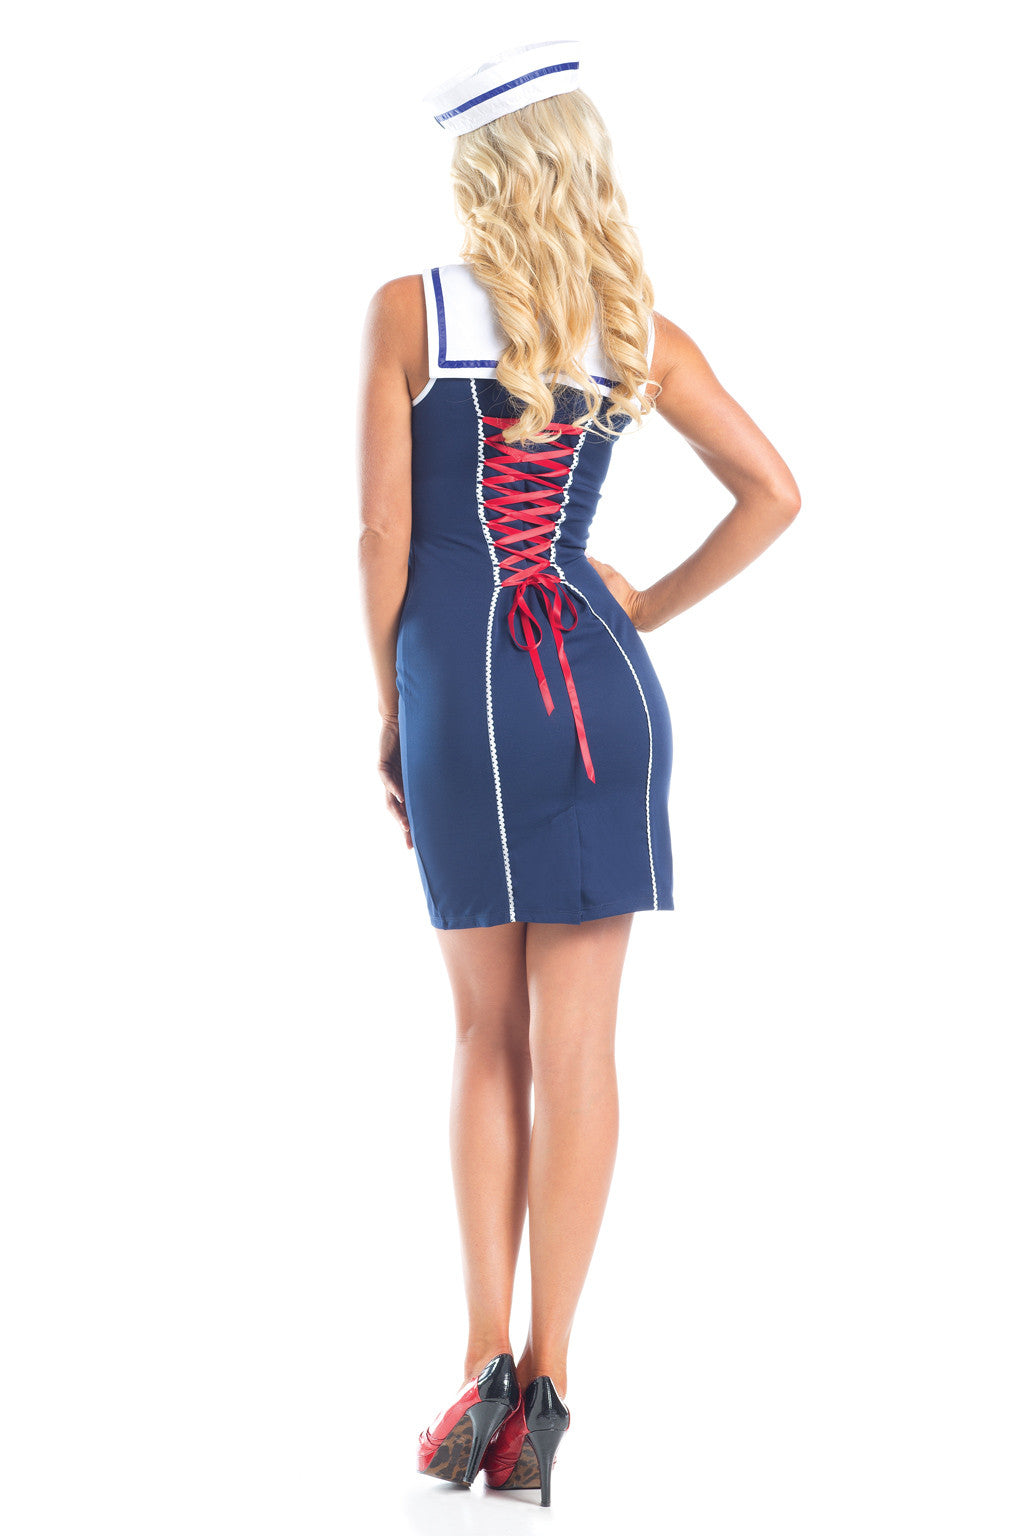 Be Wicked BW1563 3 Piece Chief Of The Boat BW1563 S/M Blue, Large, Medium, Red, Retro, Sailor, Small, Uniform, White, women's costumes